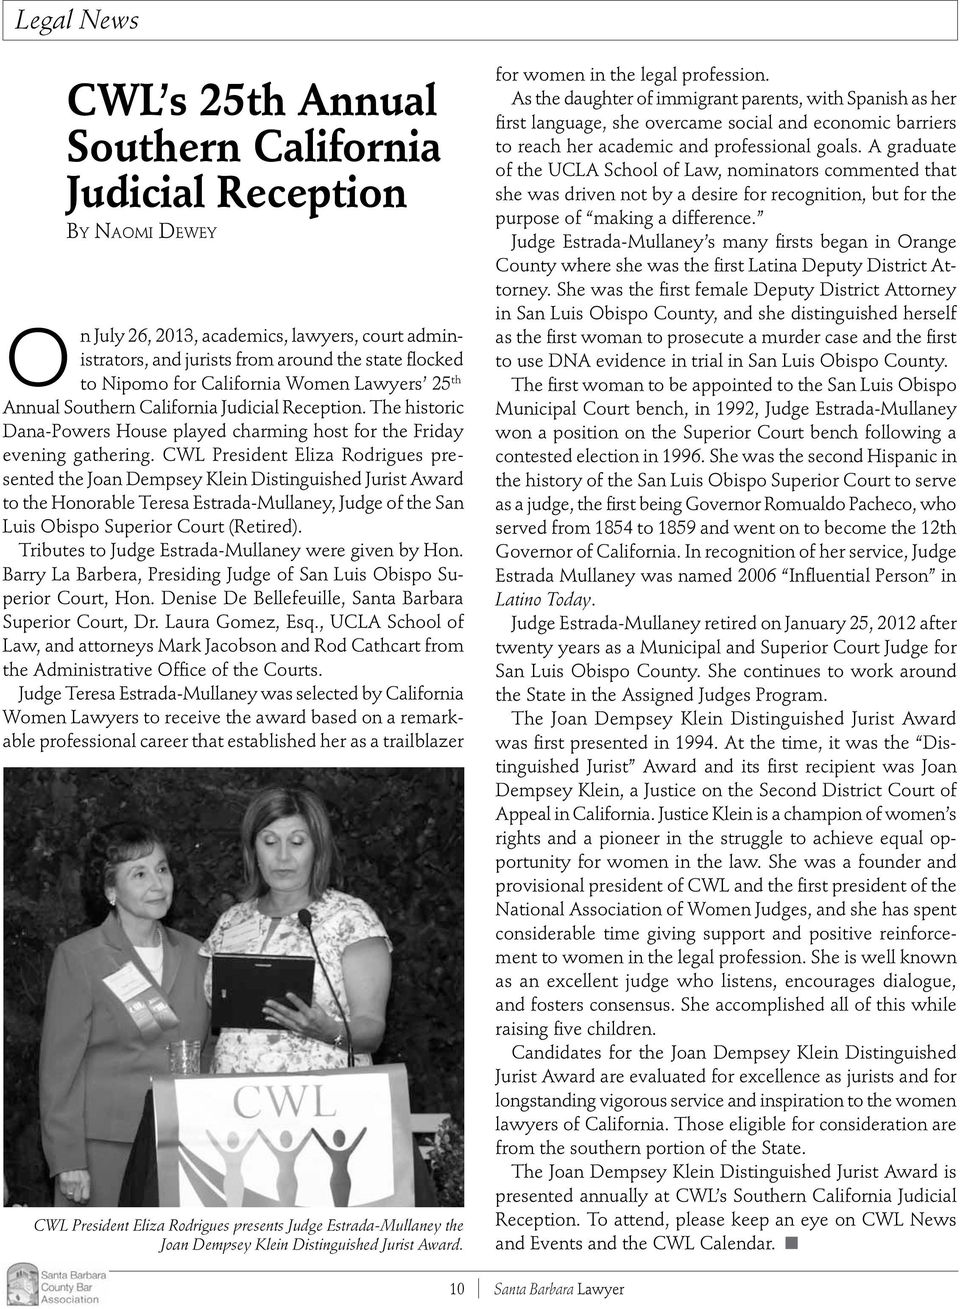 CWL President Eliza Rodrigues presented the Joan Dempsey Klein Distinguished Jurist Award to the Honorable Teresa Estrada-Mullaney, Judge of the San Luis Obispo Superior Court (Retired).